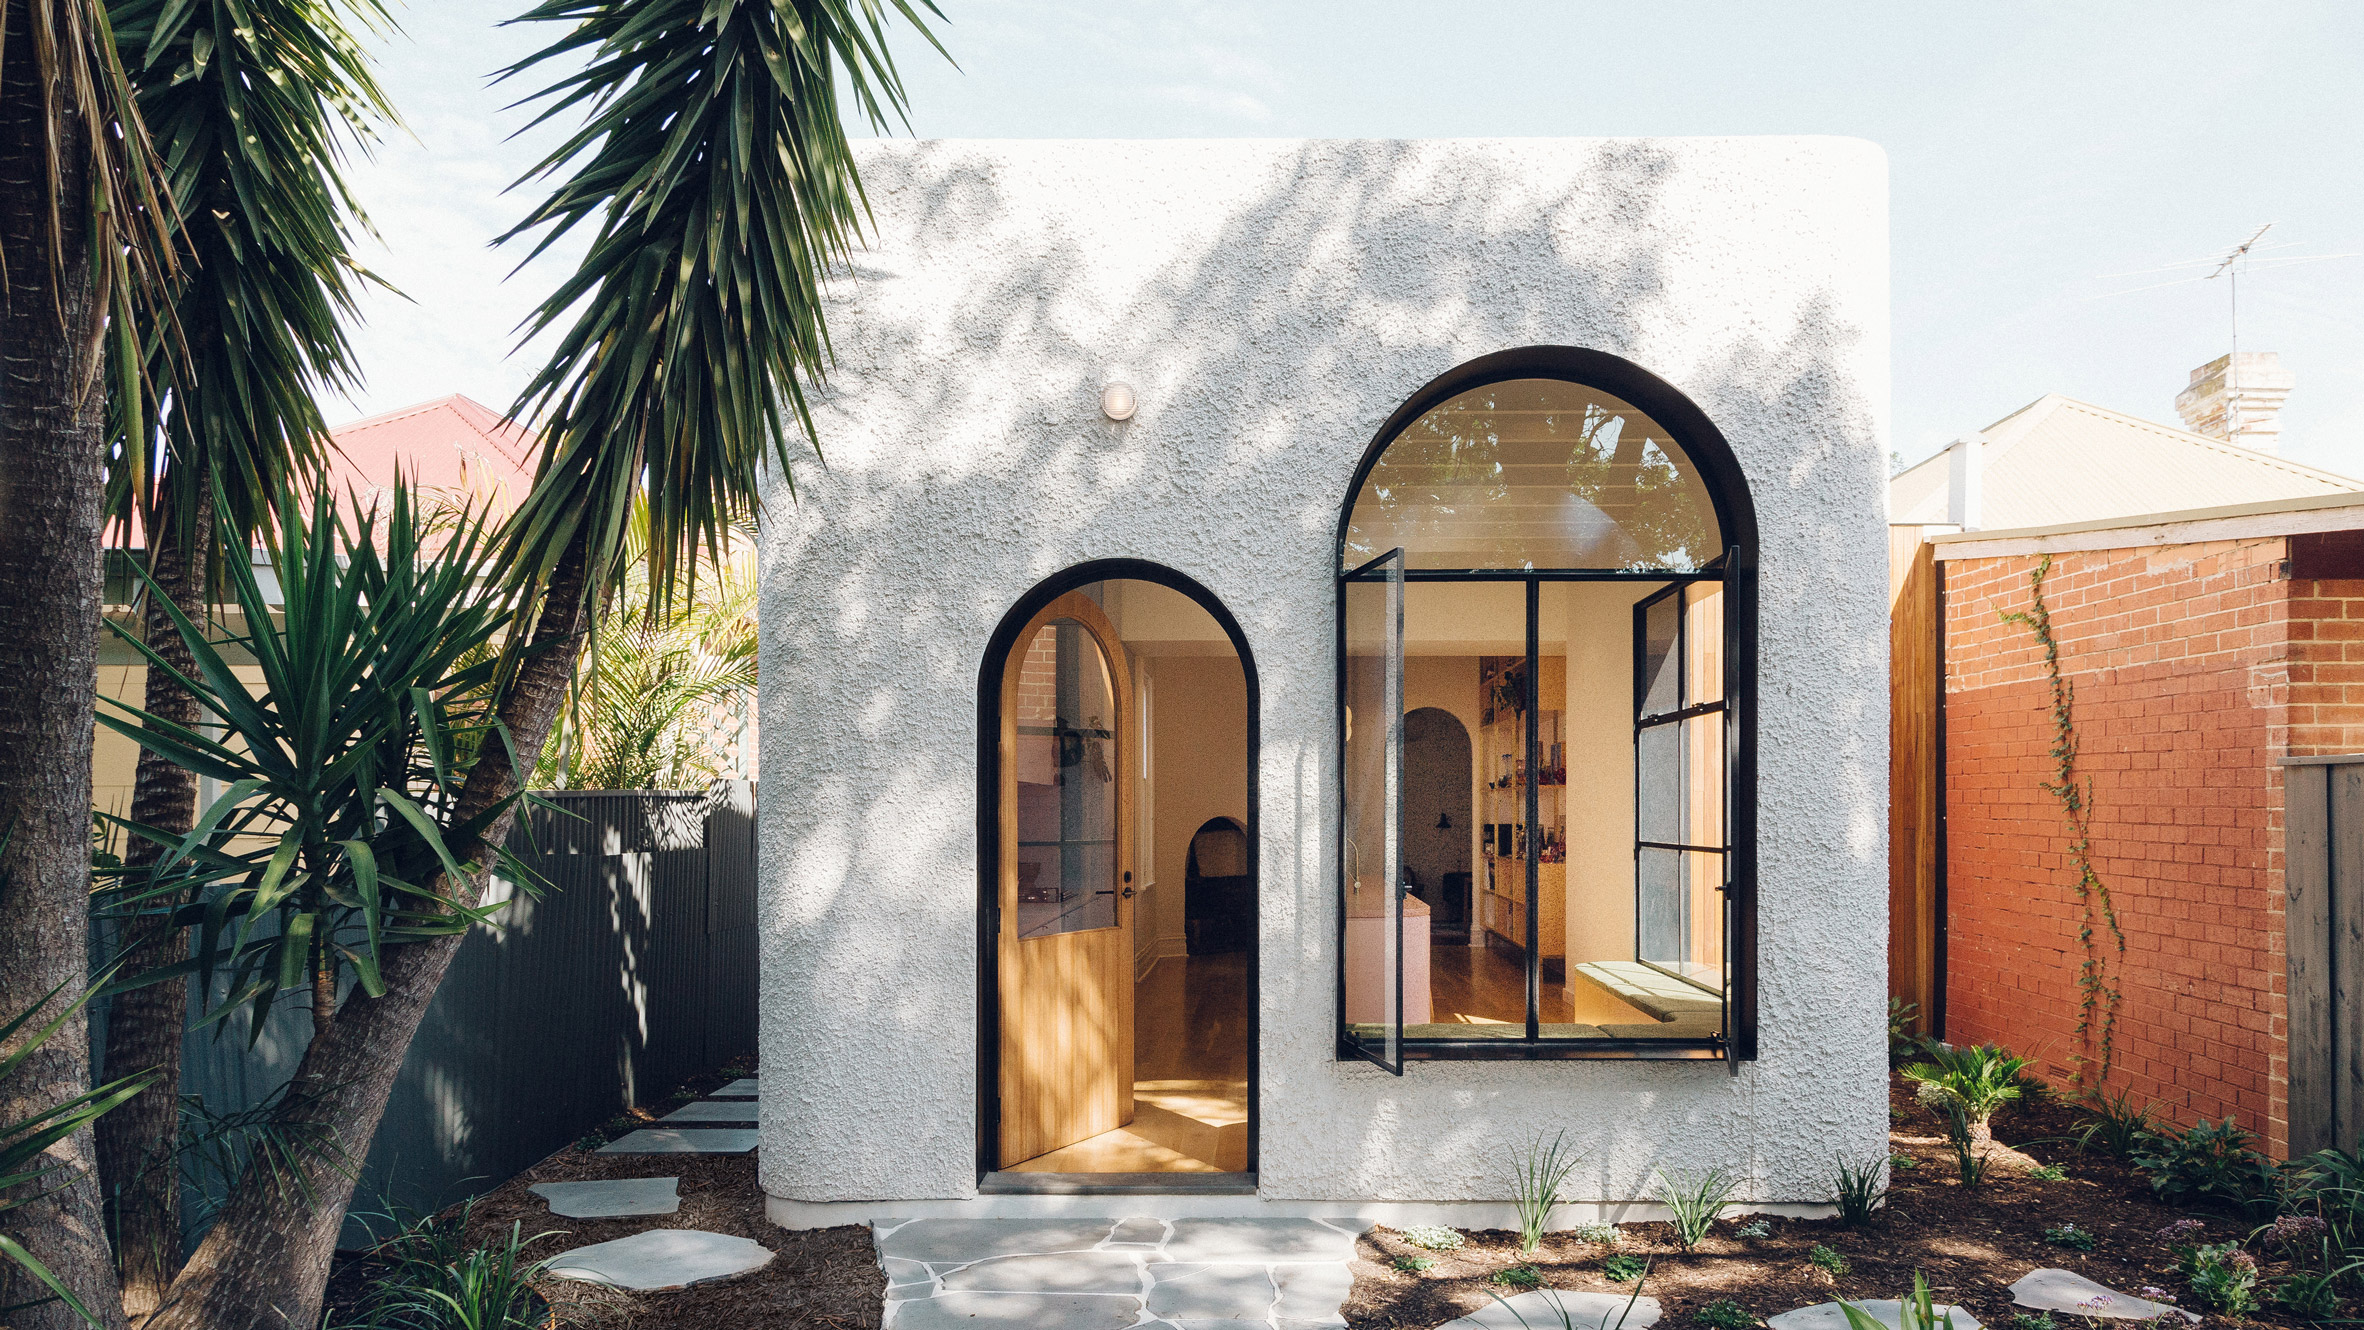 Stylish stucco home is all curves and color